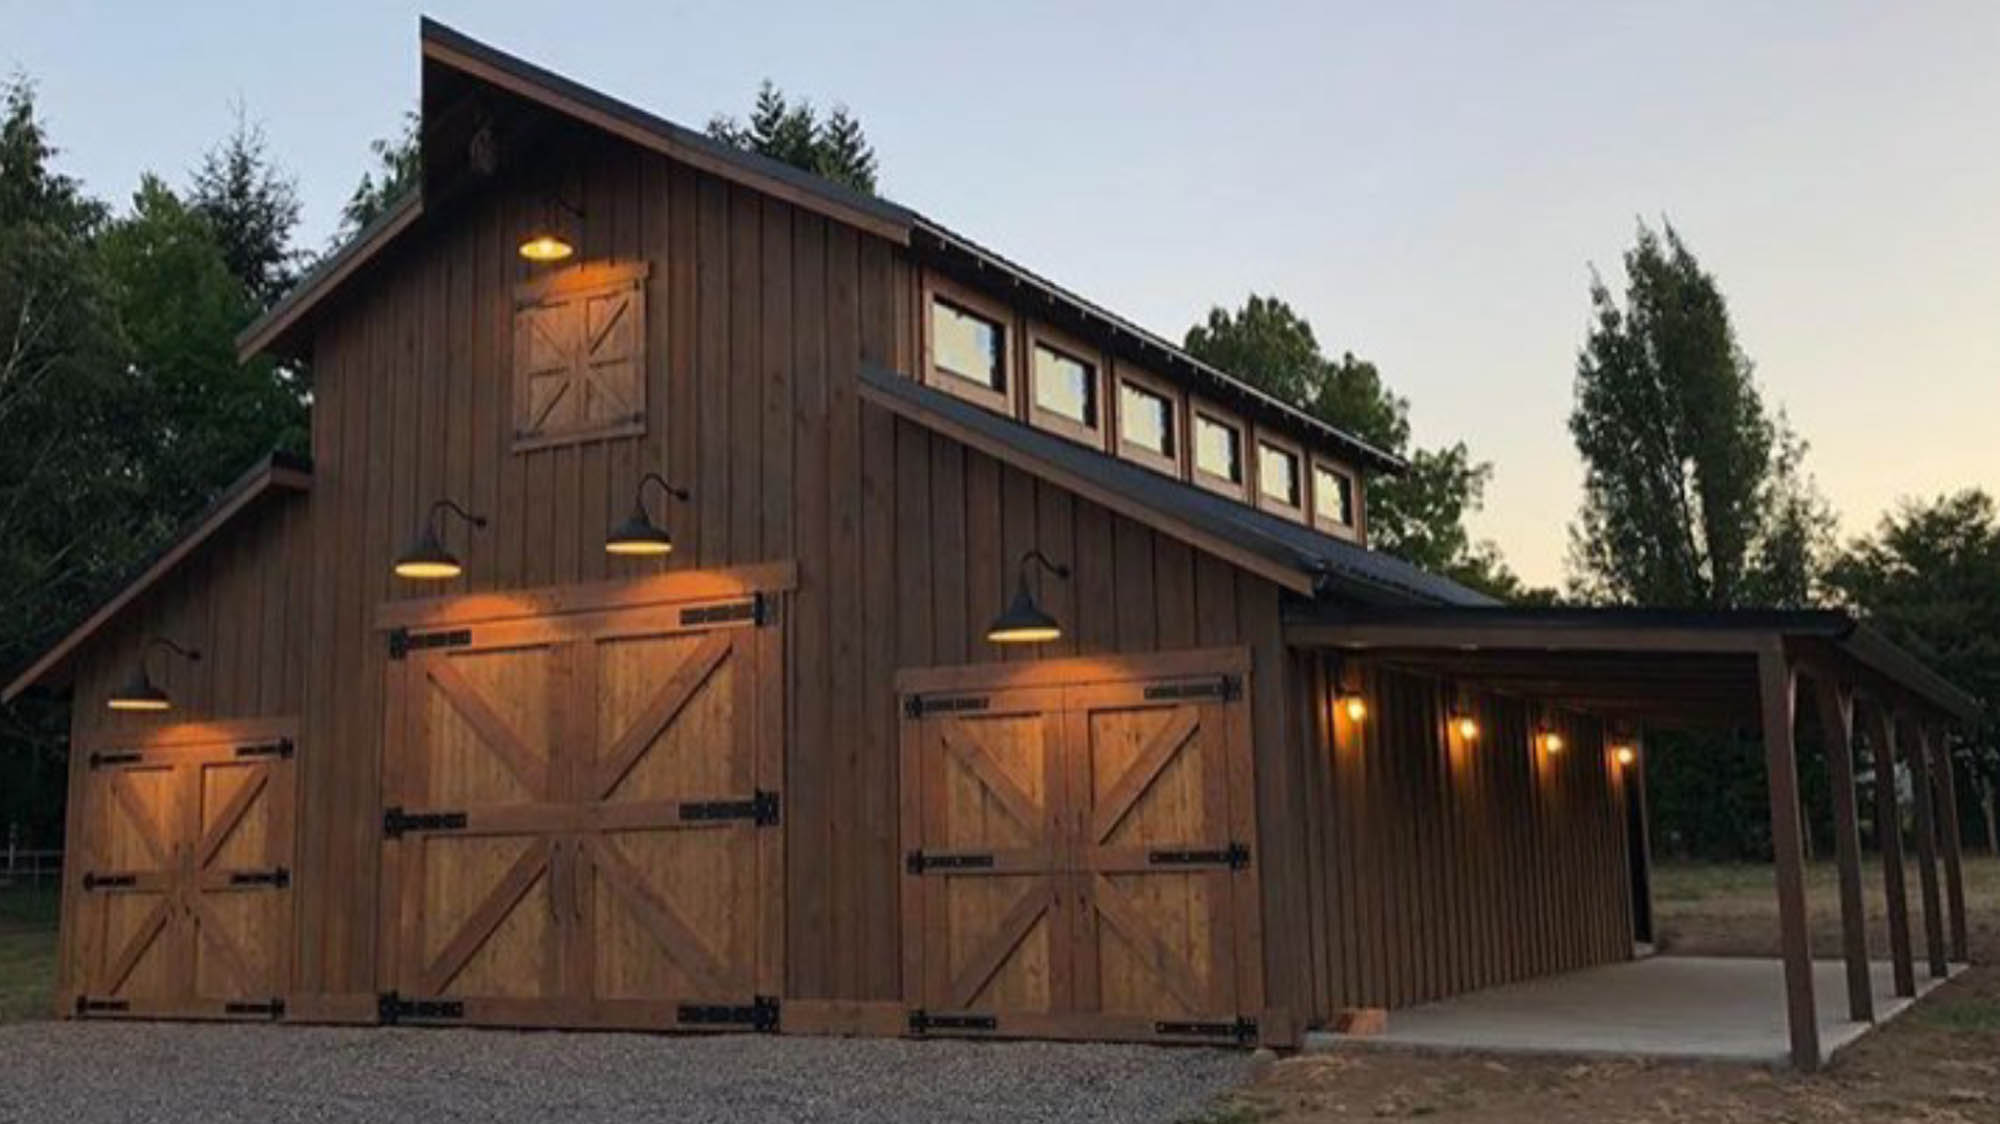 Salmon Creek Barn at night